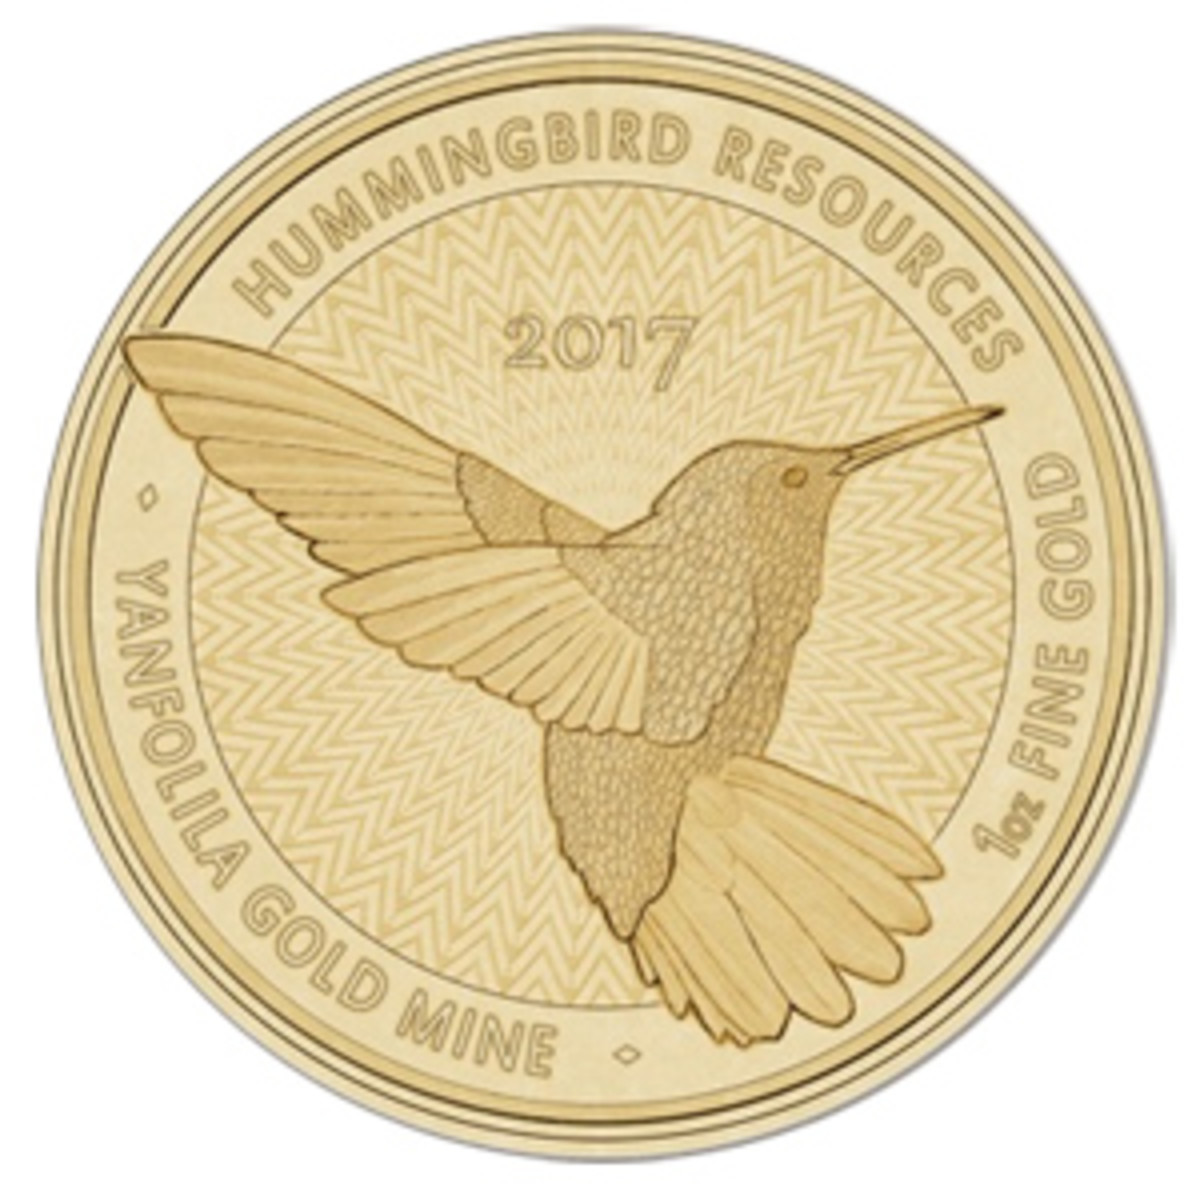 The metal for gold Hummingbird medals being marketed as coins originates in Mali.